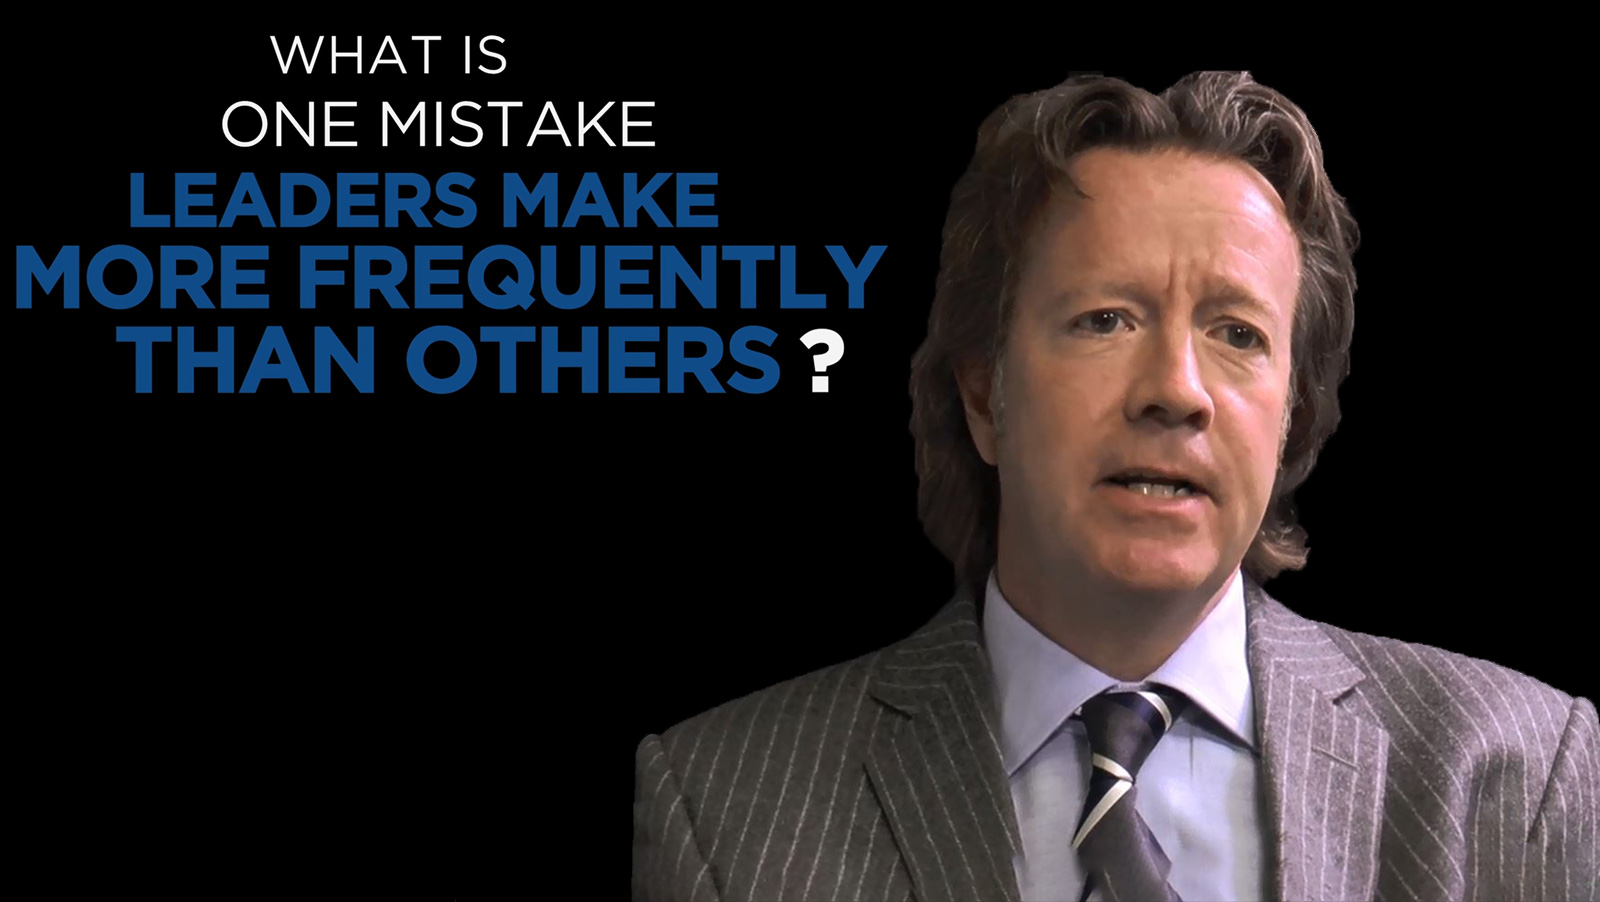 Andy McIver: Shared Experience - What is one mistake leaders make more frequently than others?